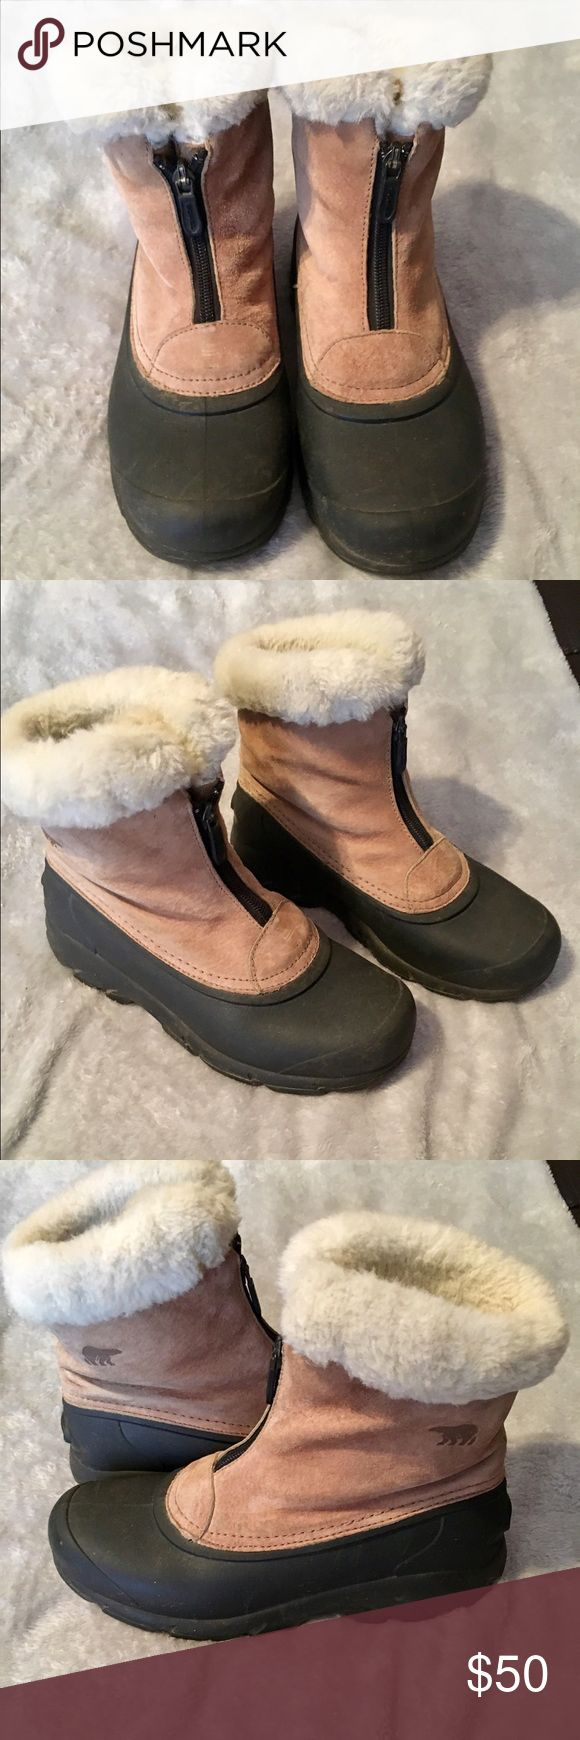 Sorel Thinsulate Boots Size 7 Sorel Thinsulate Boots Size 7; wore just a few times; great condition Sorel Shoes Winter & Rain Boots